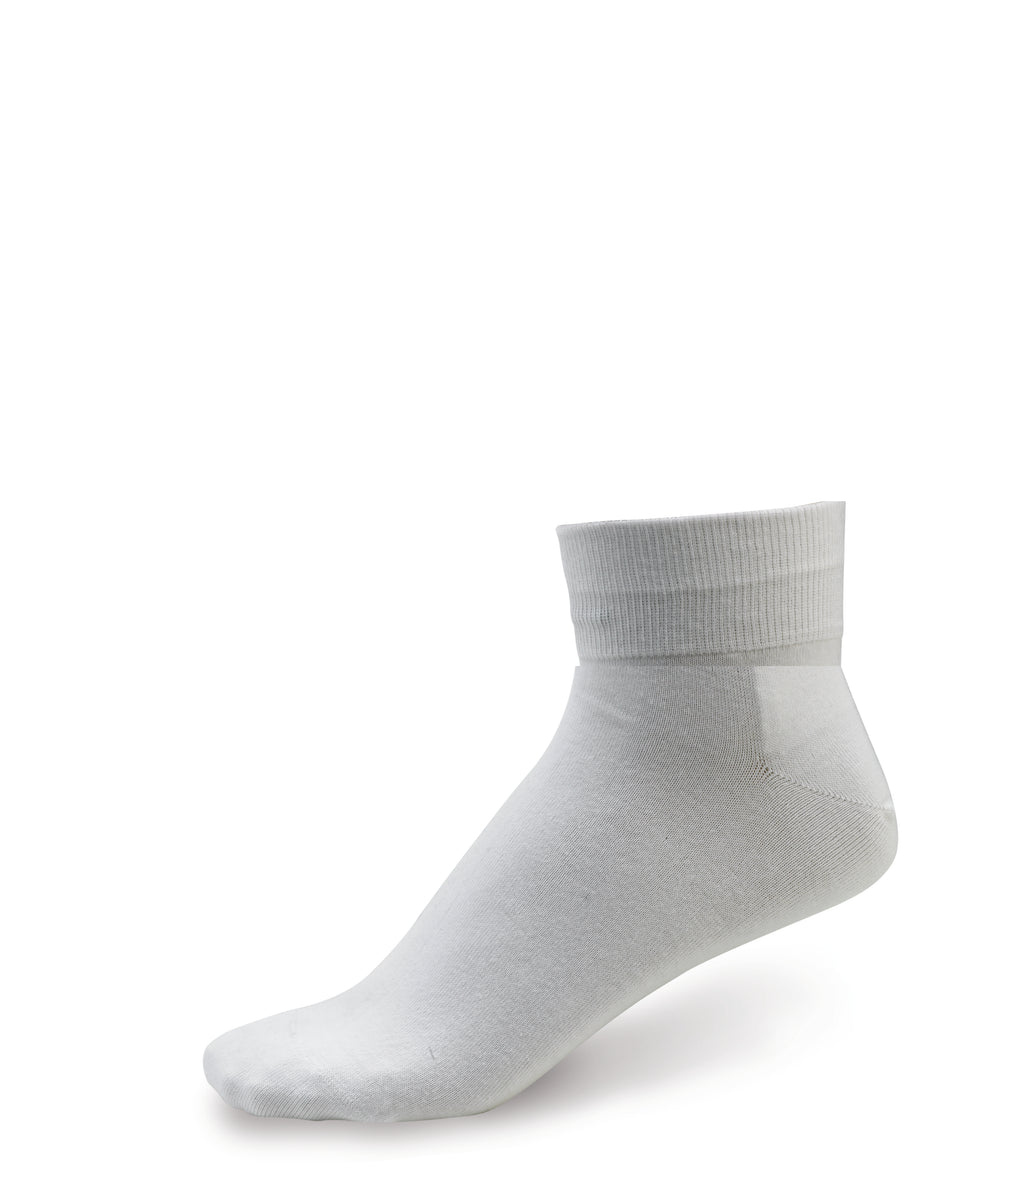 MARCMARCS COTTON LIGHT SHORT SOCKS